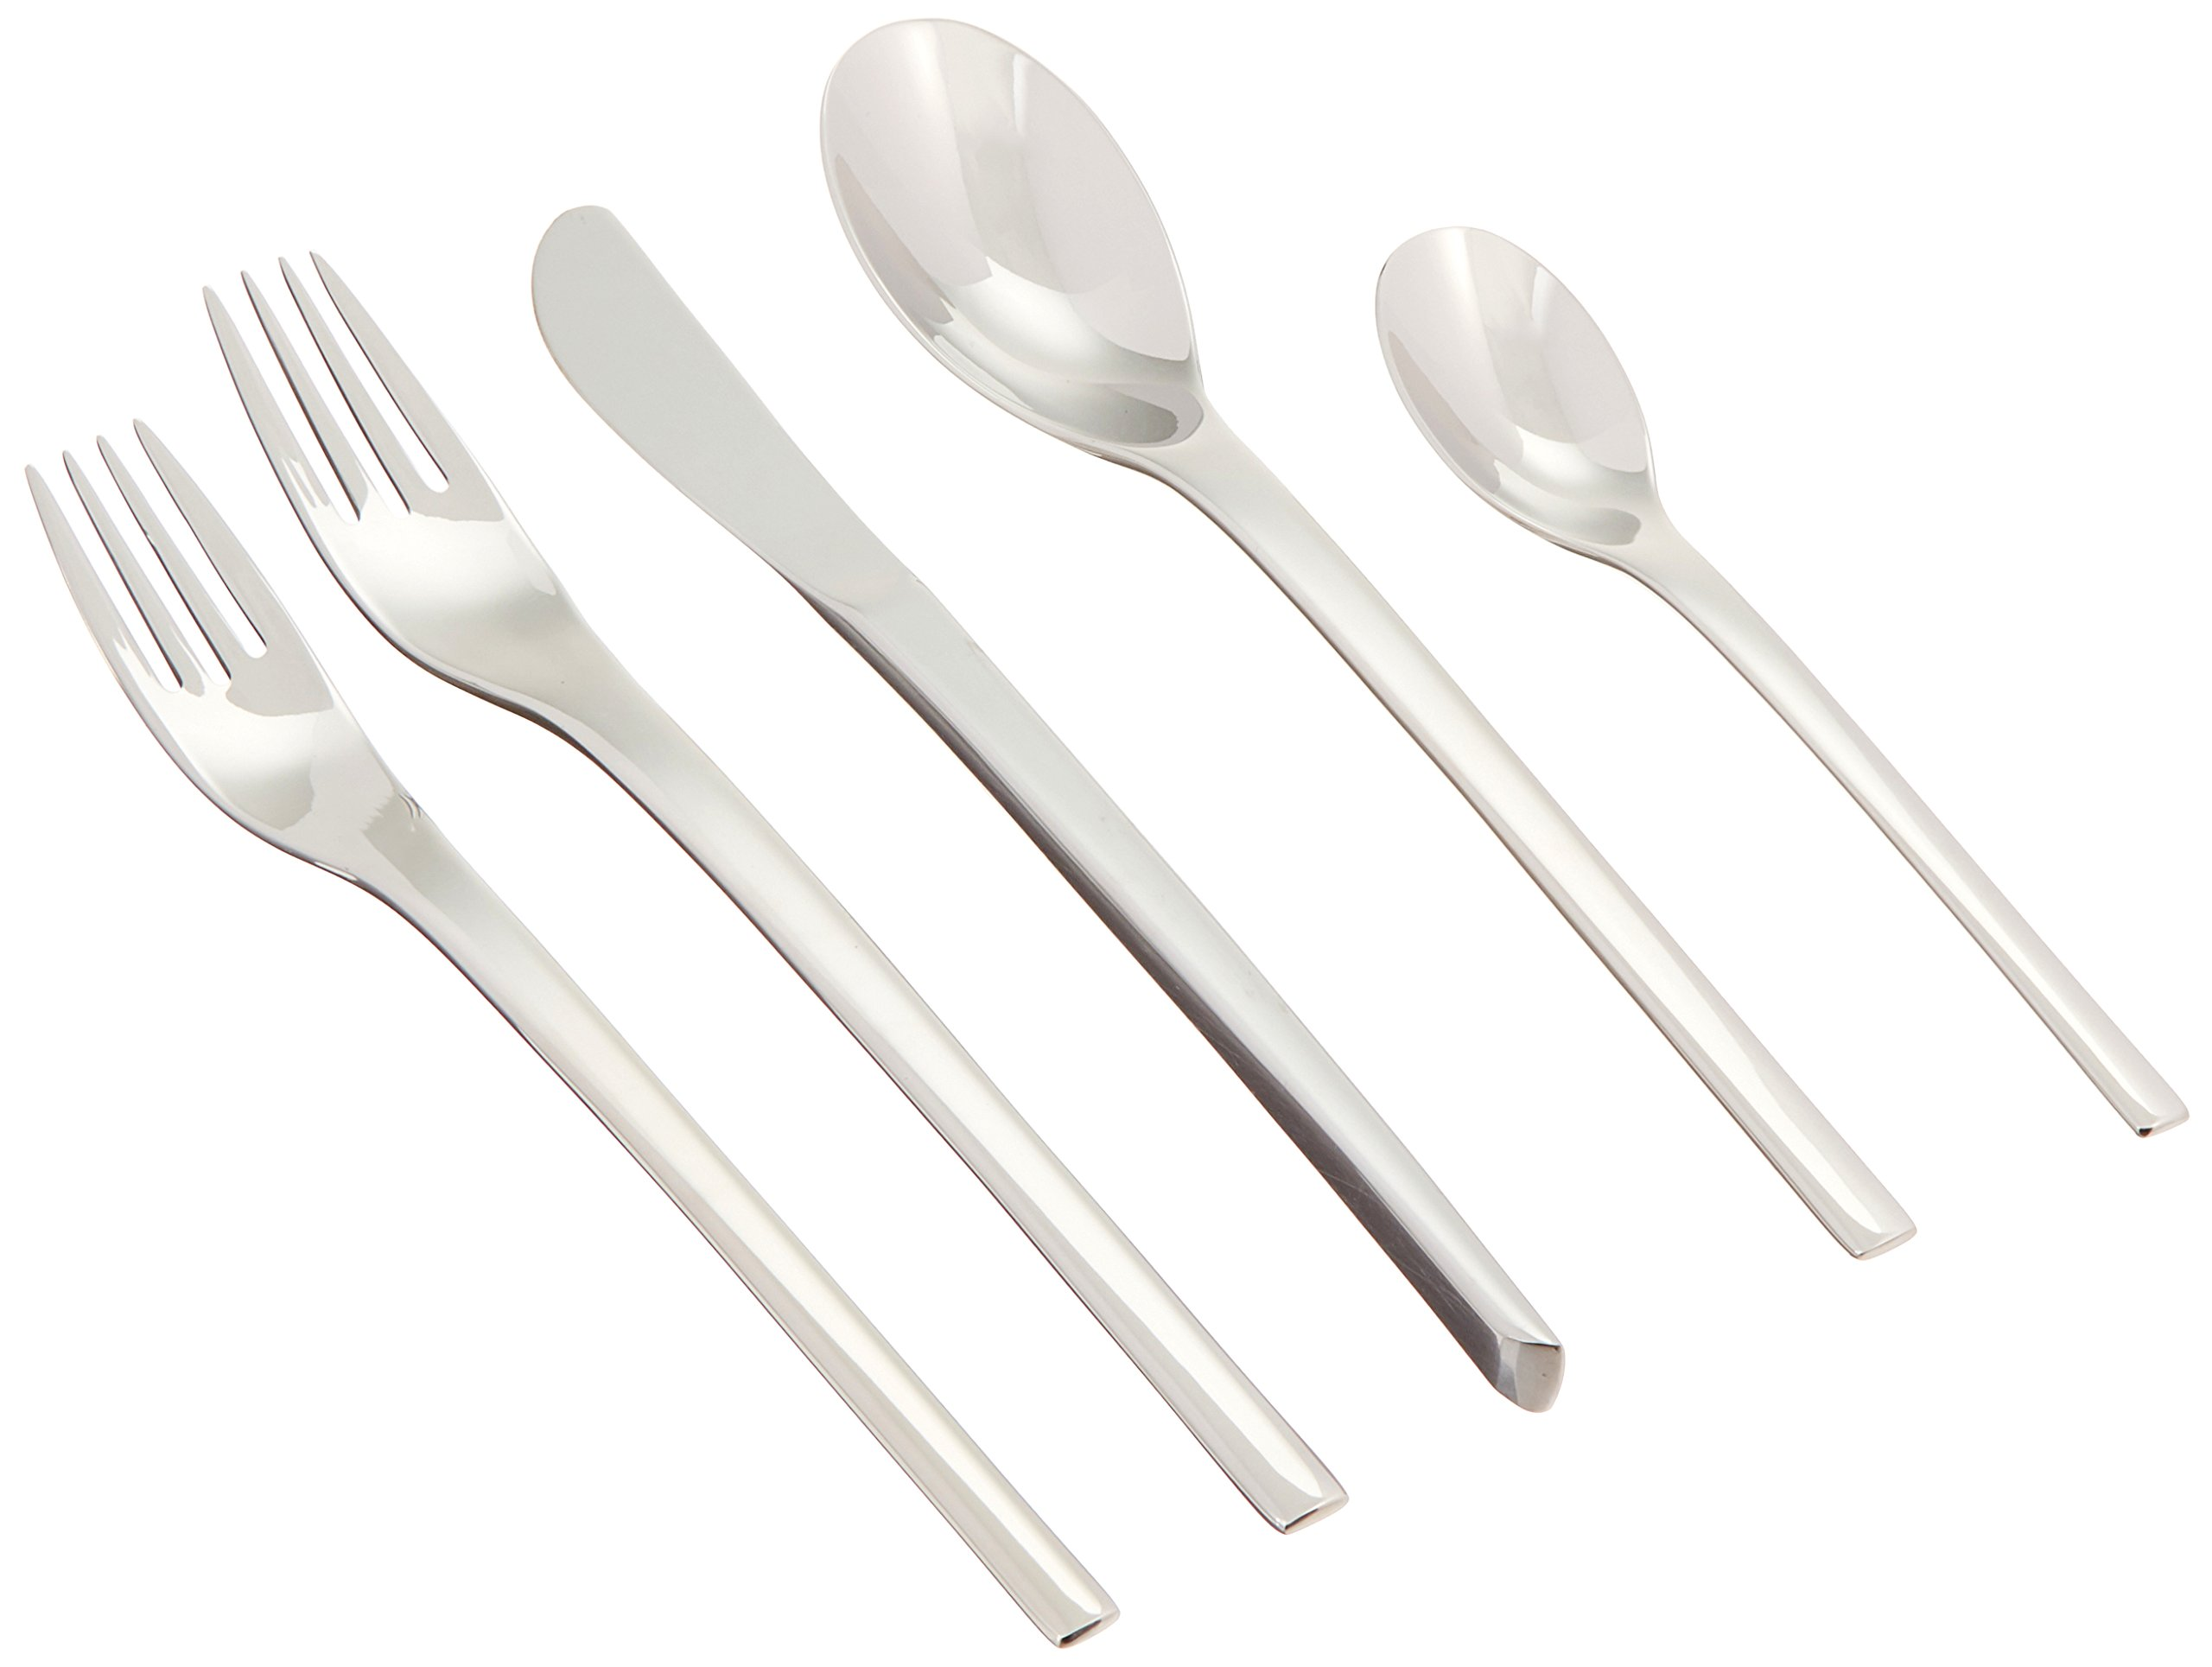 WMF Nordic 30 pc Stainless Steel Flatware Set, Service for 6